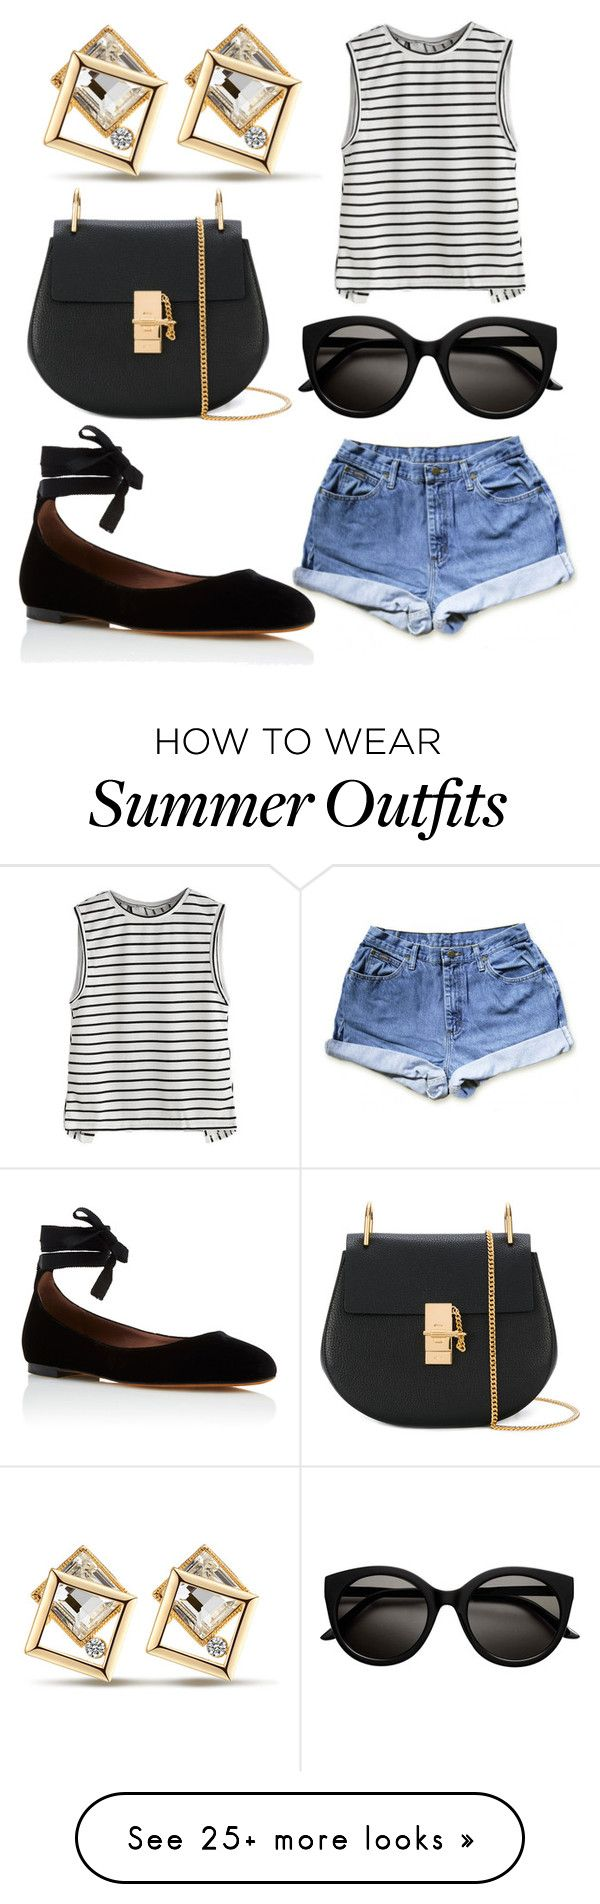 """""""Random Summer Outfit: Striped Tank"""" by megajor12 on Polyvore featuring Chloé and Tabitha Simmons"""